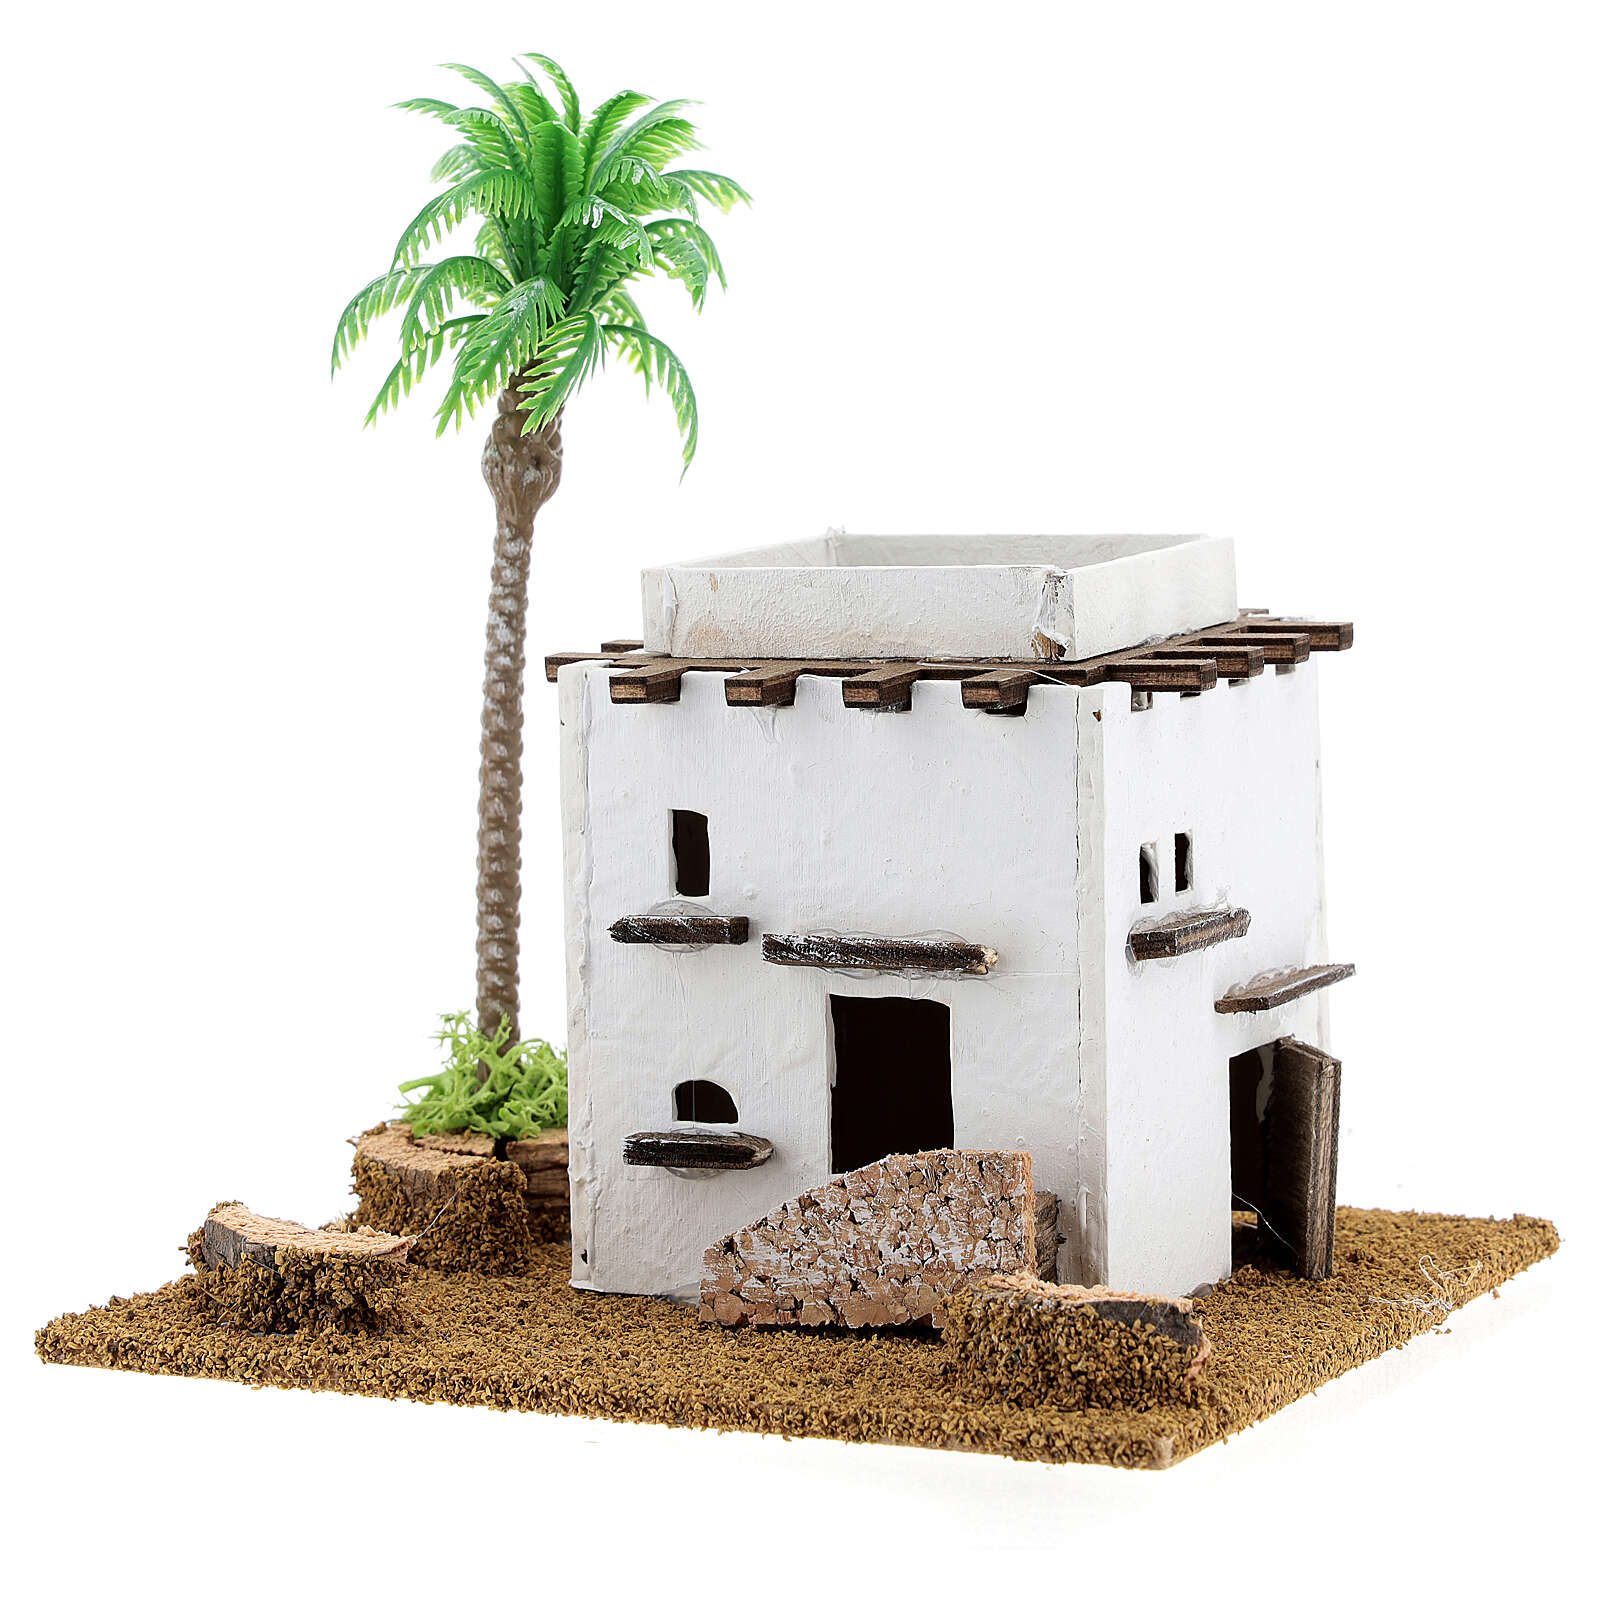 Arabic style cottage with palm tree for Nativity scene, size 13x12x15cm 4